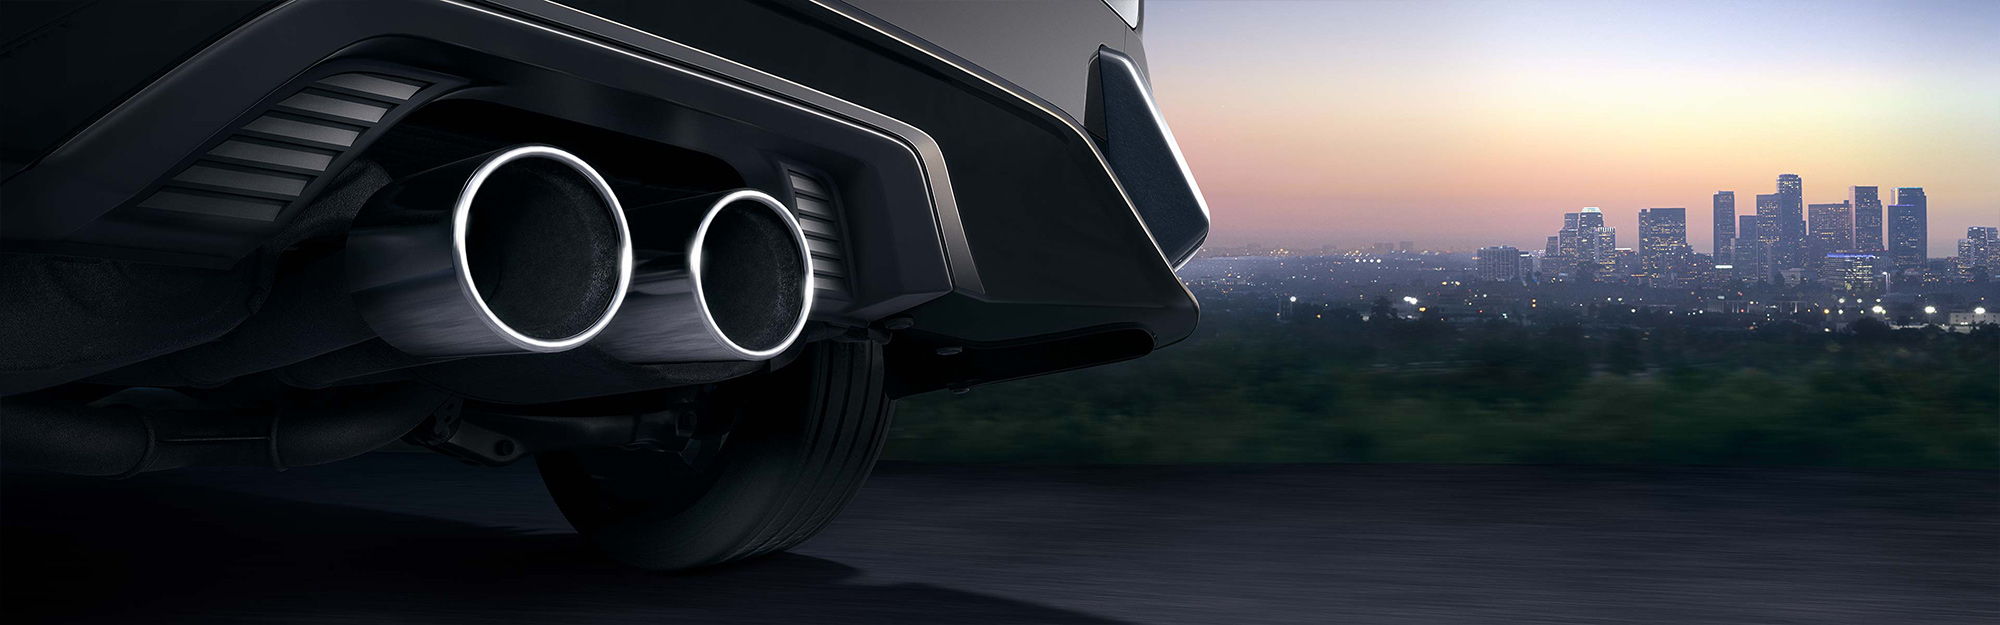 2019 Honda Civic Hatchback exhaust